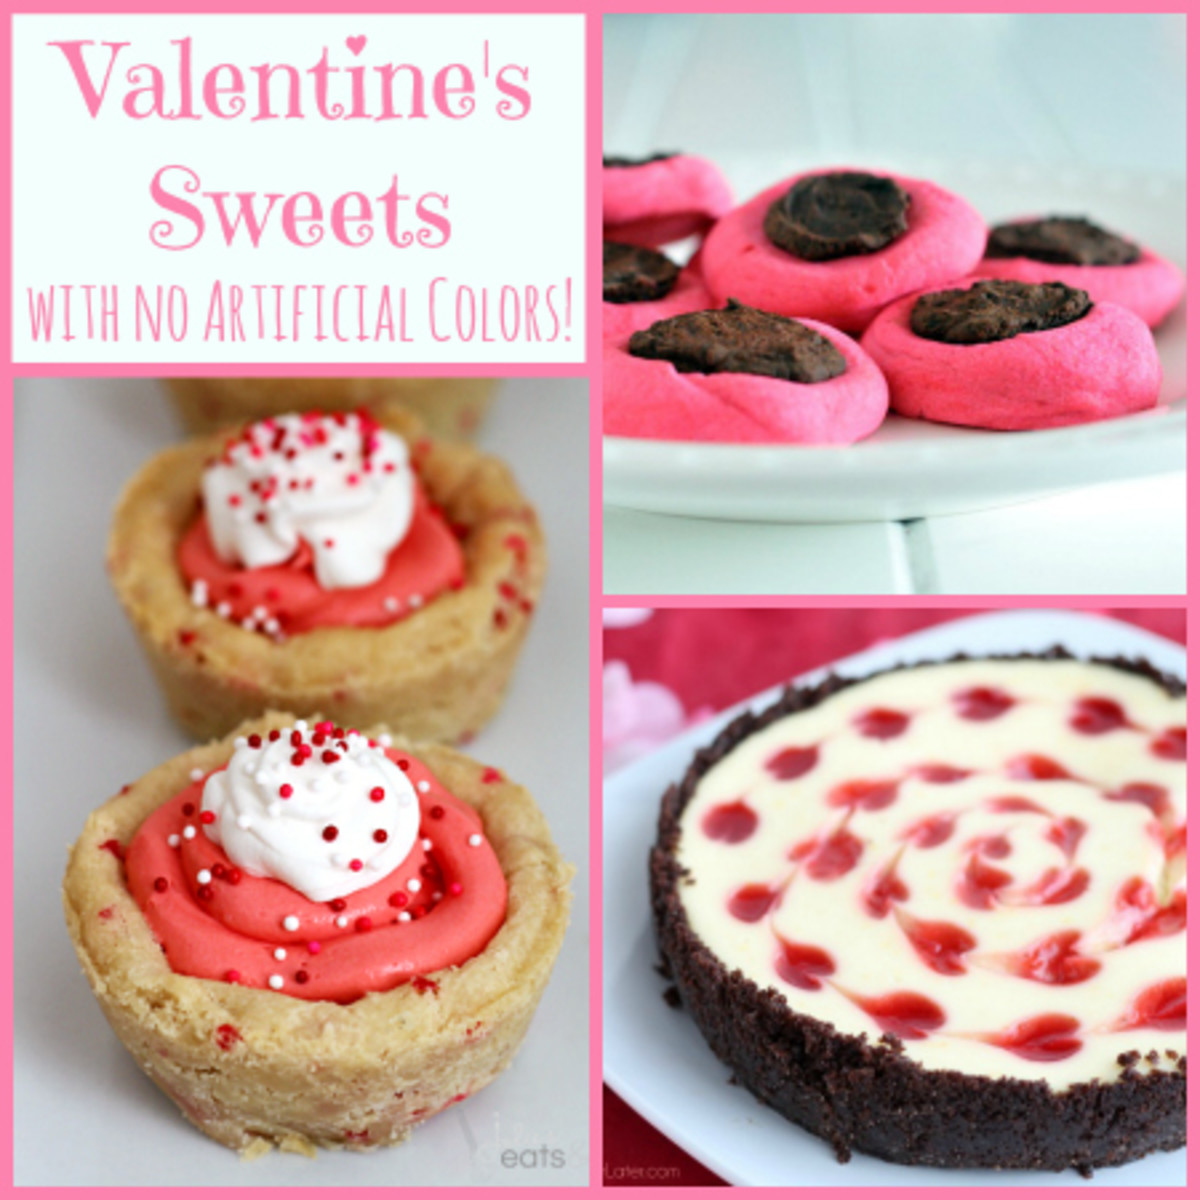 8 Valentine's Sweets with No Artificial Colors!